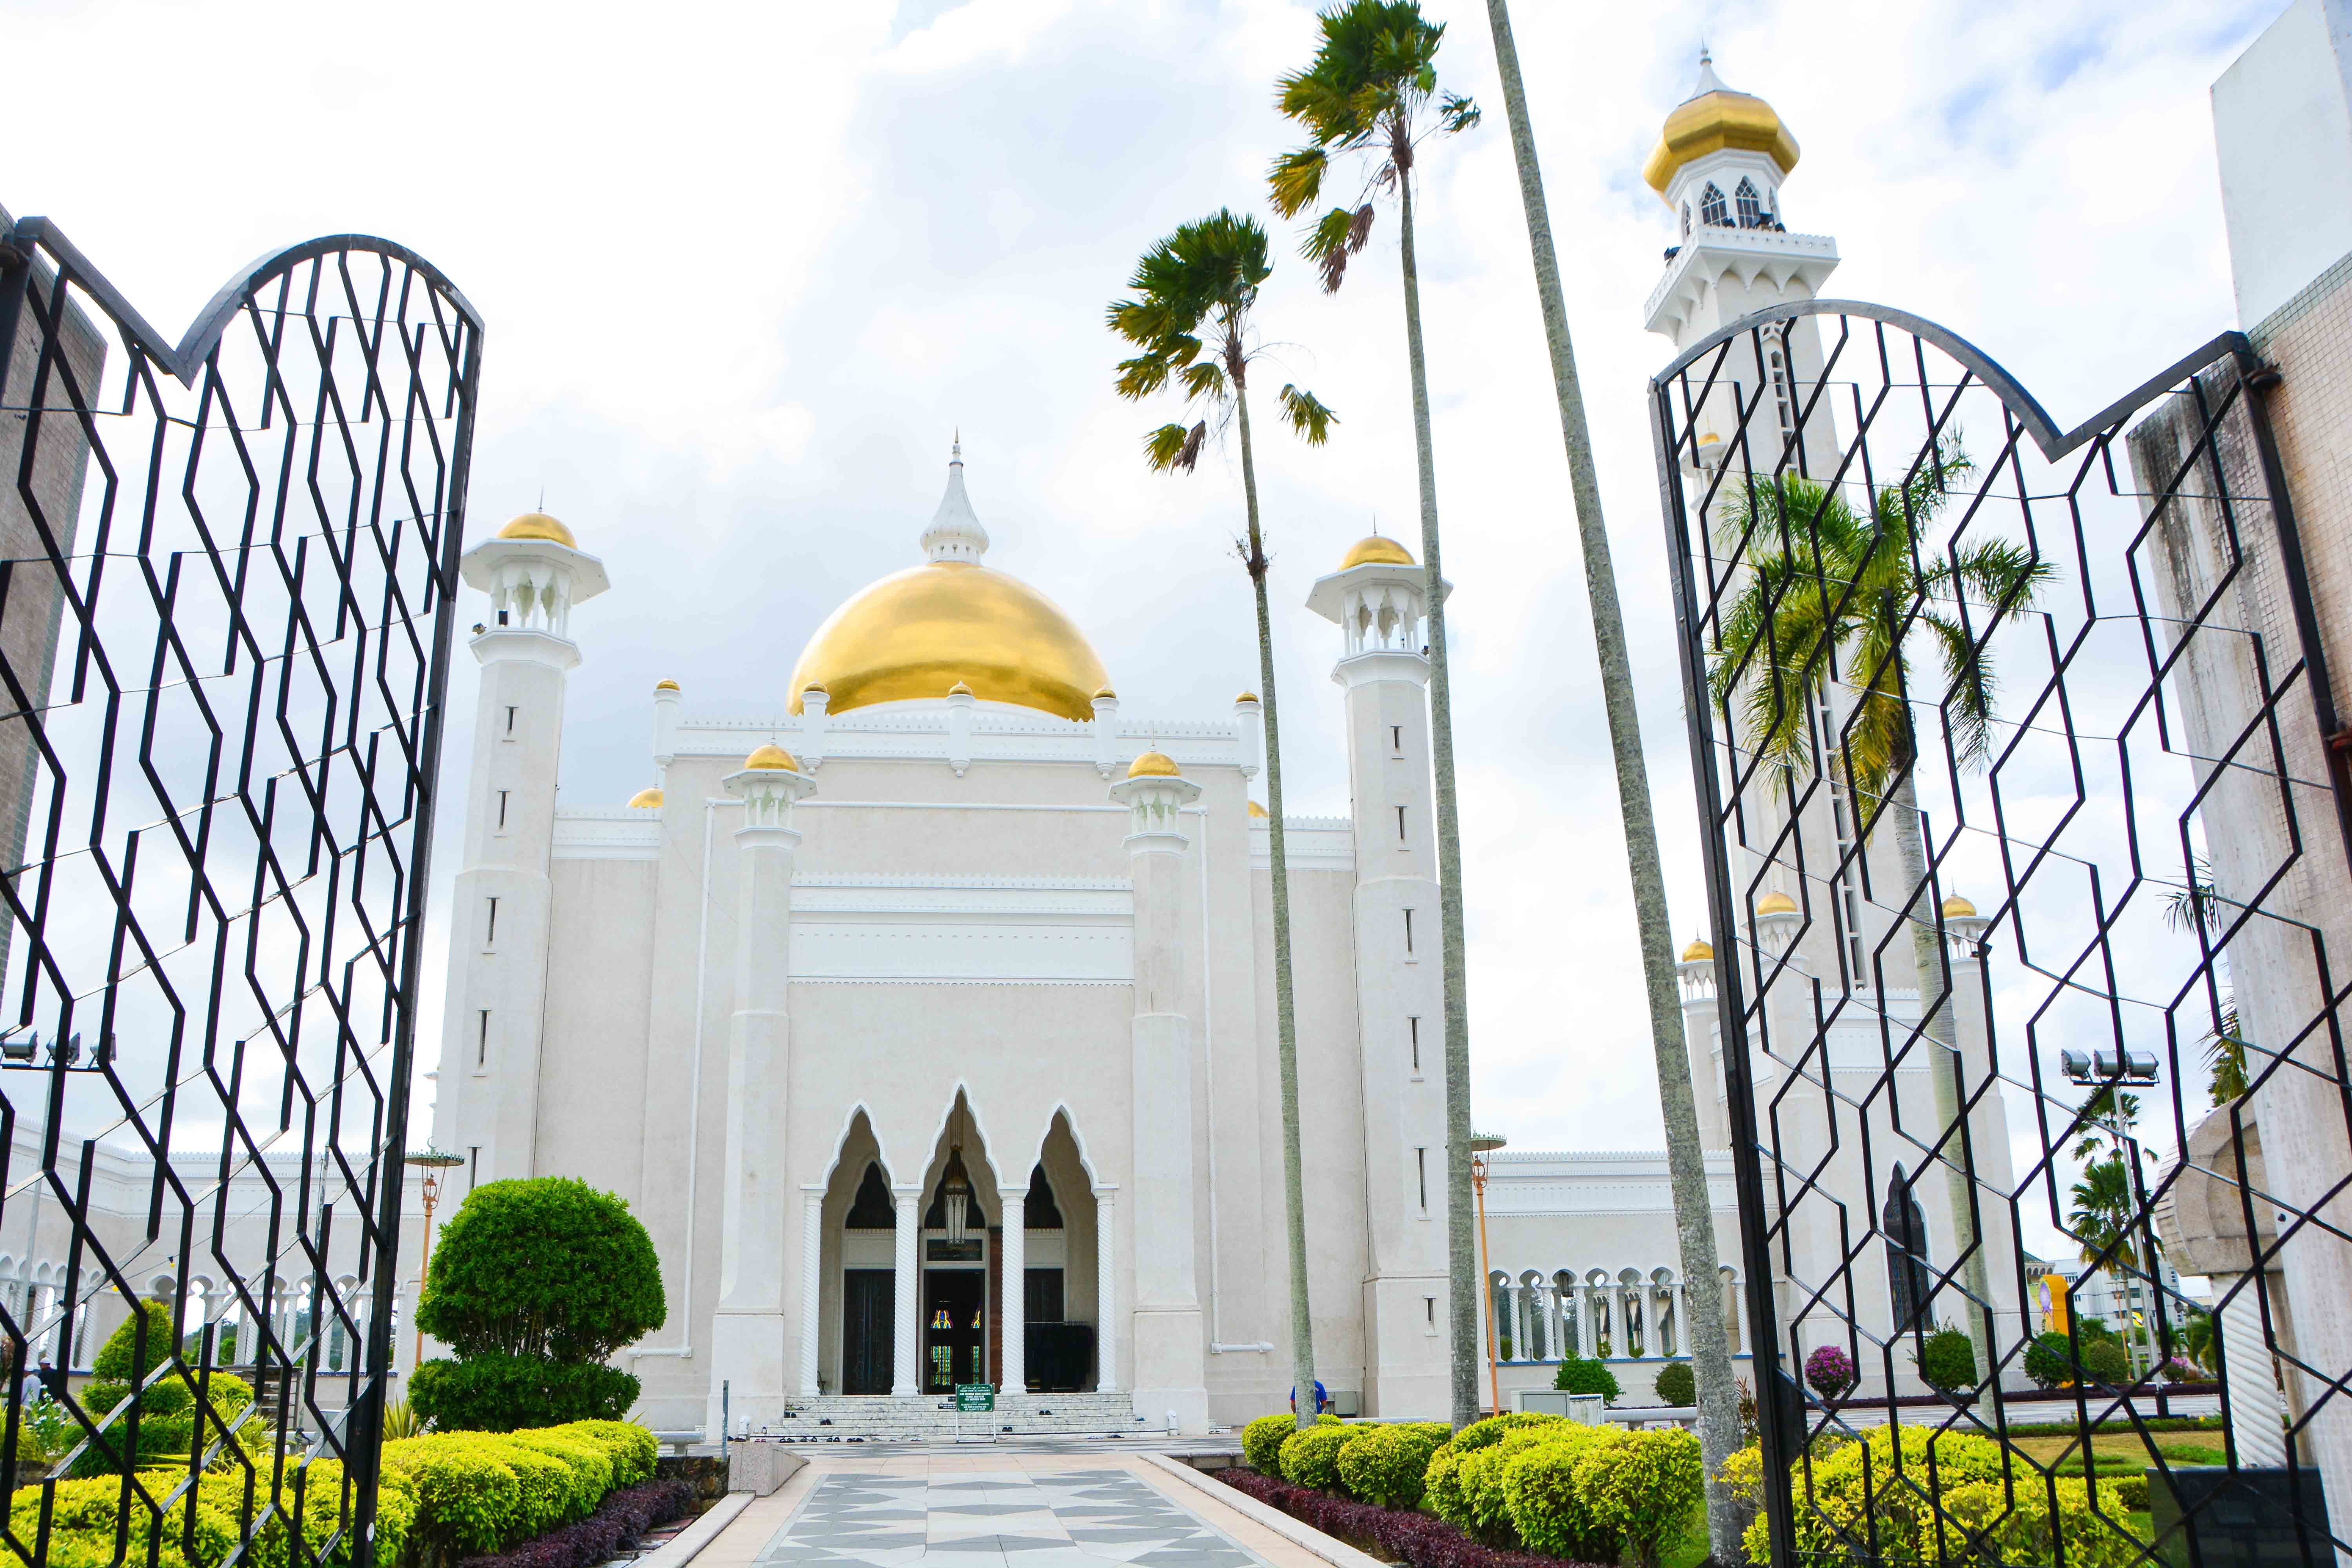 DISCOVER BRUNEI DARUSSALAM  – A TINY SULTANATE AMIDST THE BORNEAN JUNGLE